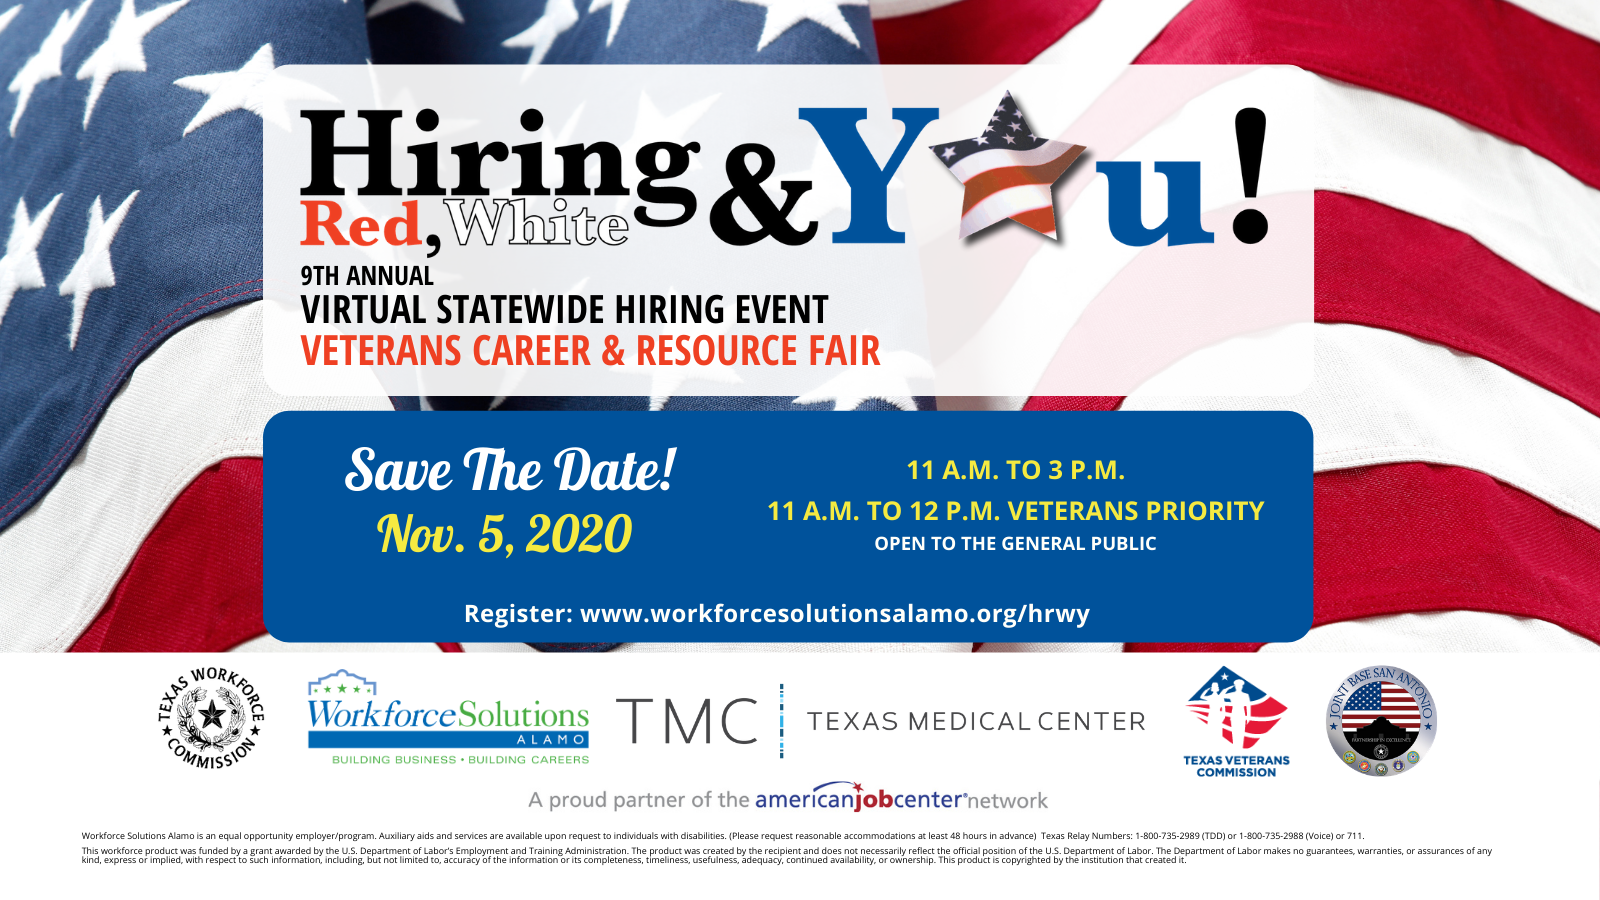 Hiring Red White & You Image depicting flag background, logo, event information: Nov 5, 2020 11AM - 3PM 11-12 PM Priority Veteran Service